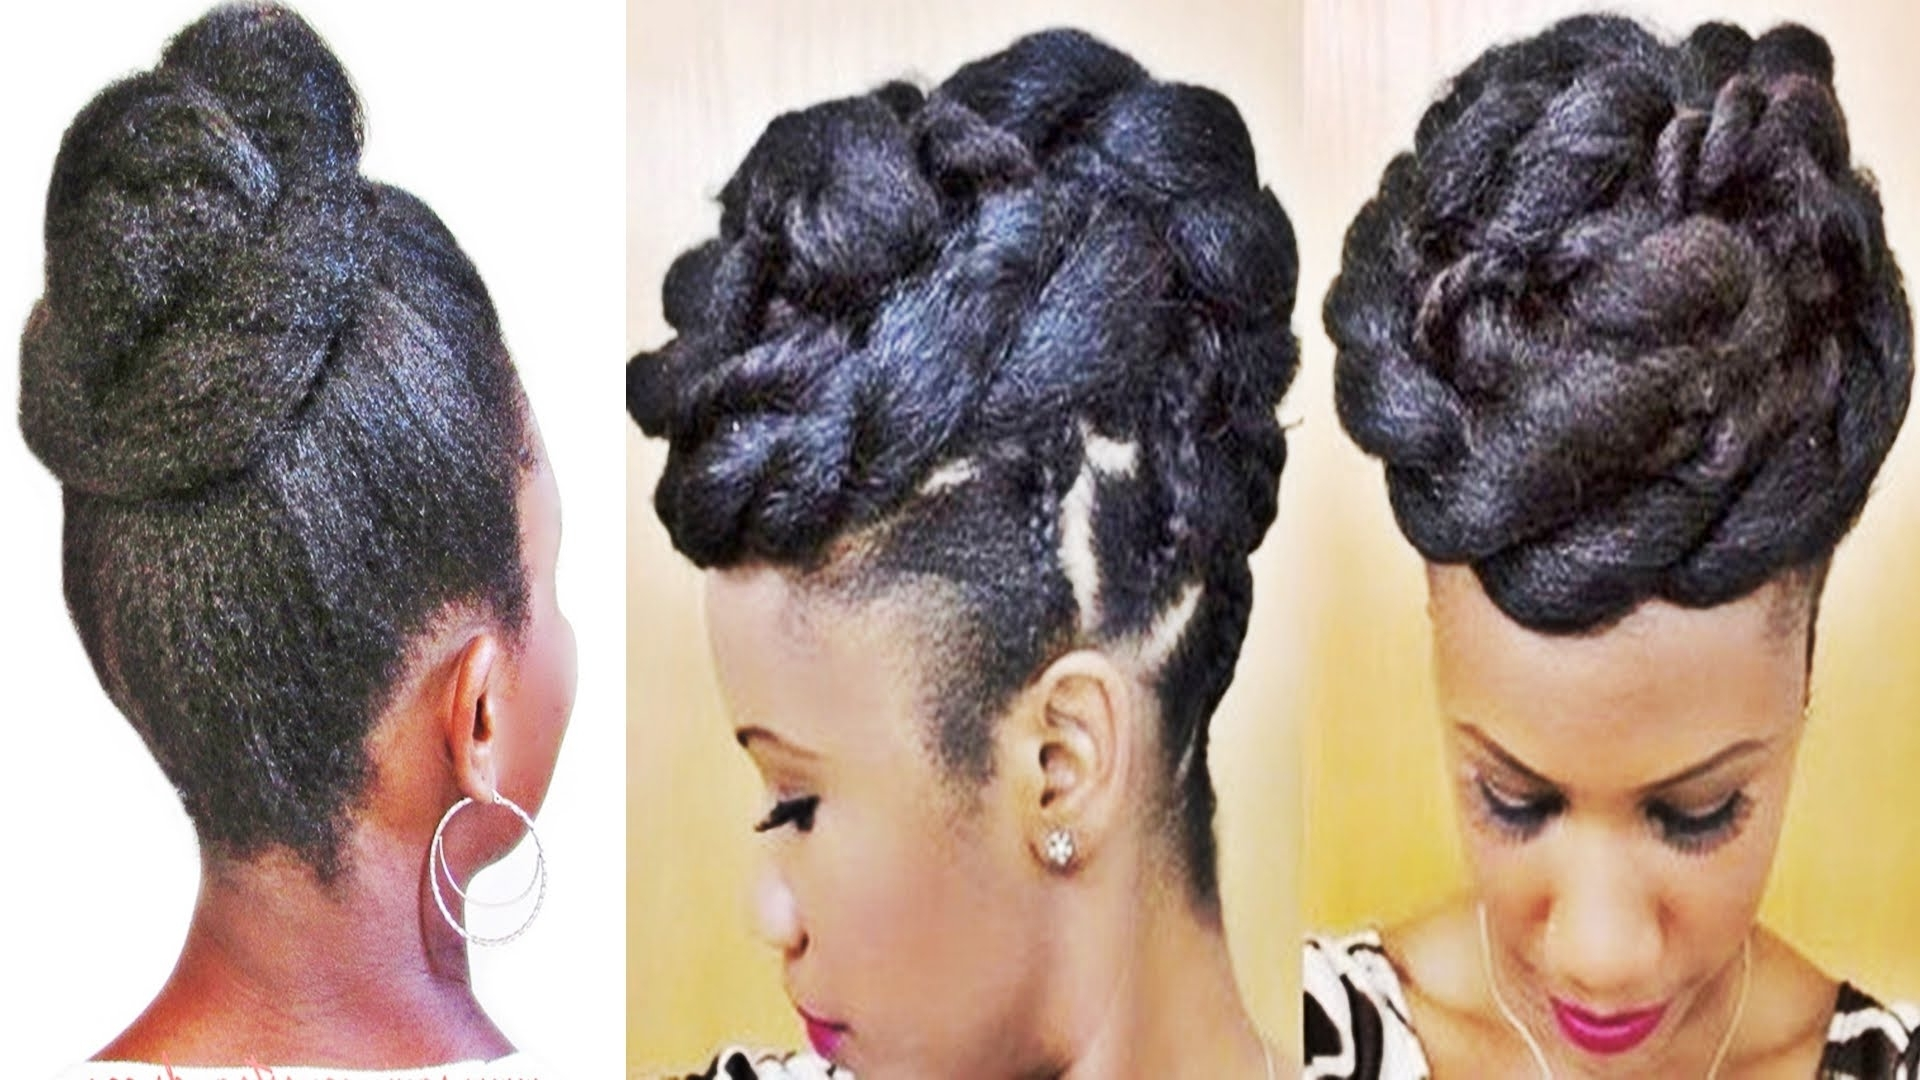 Braids And Twists Updo Hairstyle For Black Women – Youtube Pertaining To Famous Braided Up Hairstyles For Black Hair (View 6 of 15)